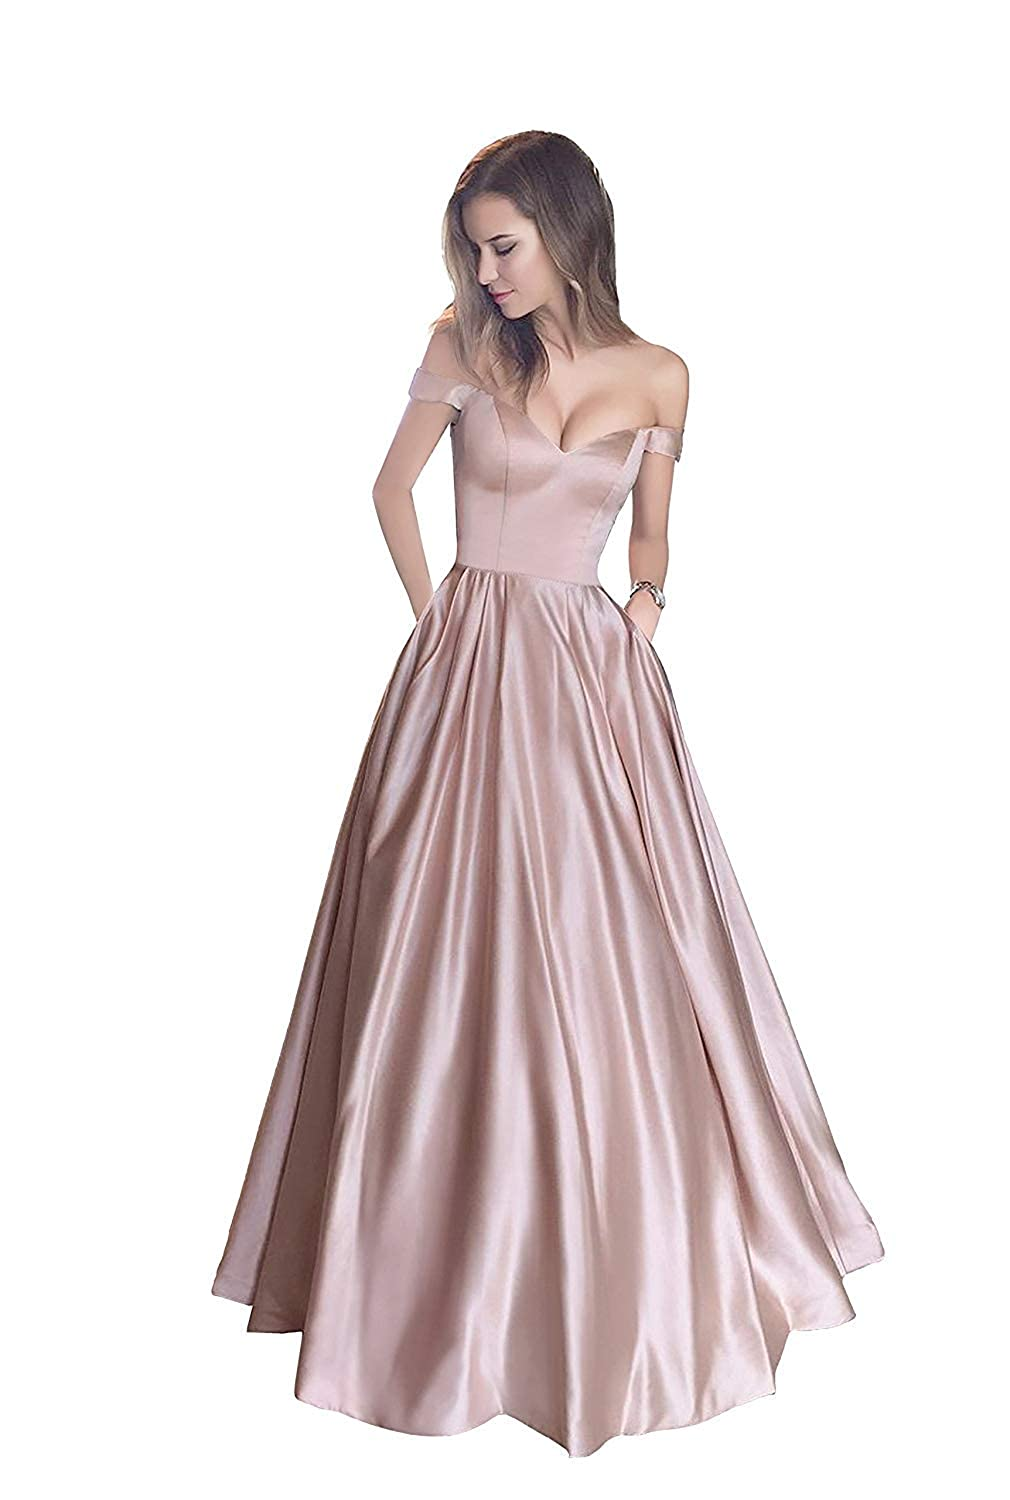 bluesh Without Belt Liaoye Women's Off Shoulder Beaded Satin Evening Prom Dress Long V Neck Formal Party Gowns with Pocket